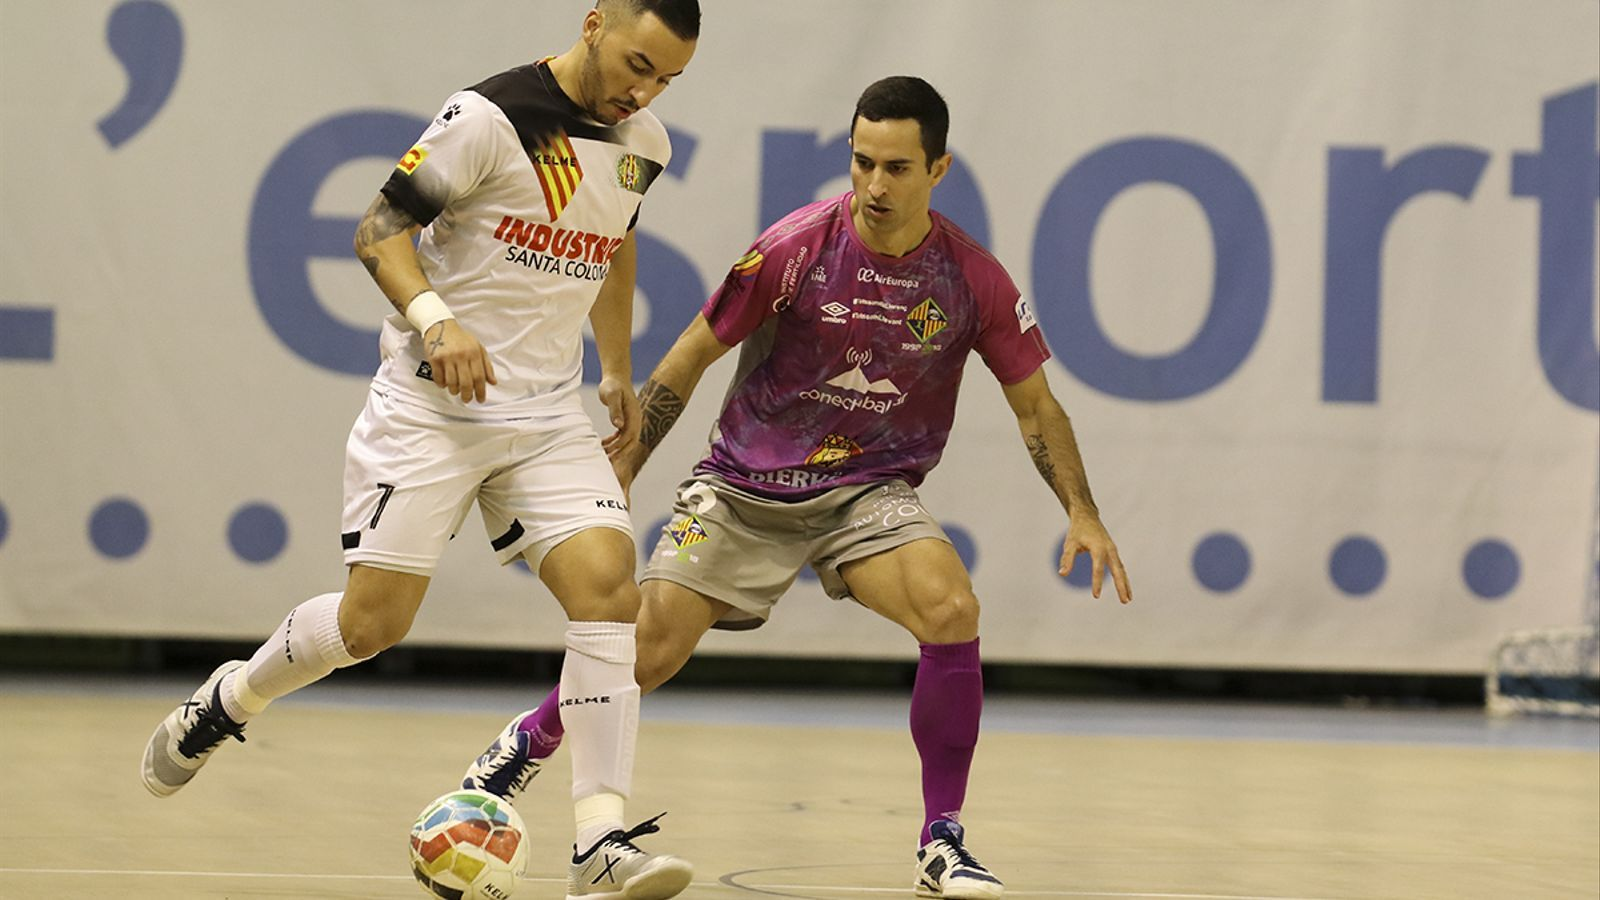 El Palma Futsal es classifica per quarts de final